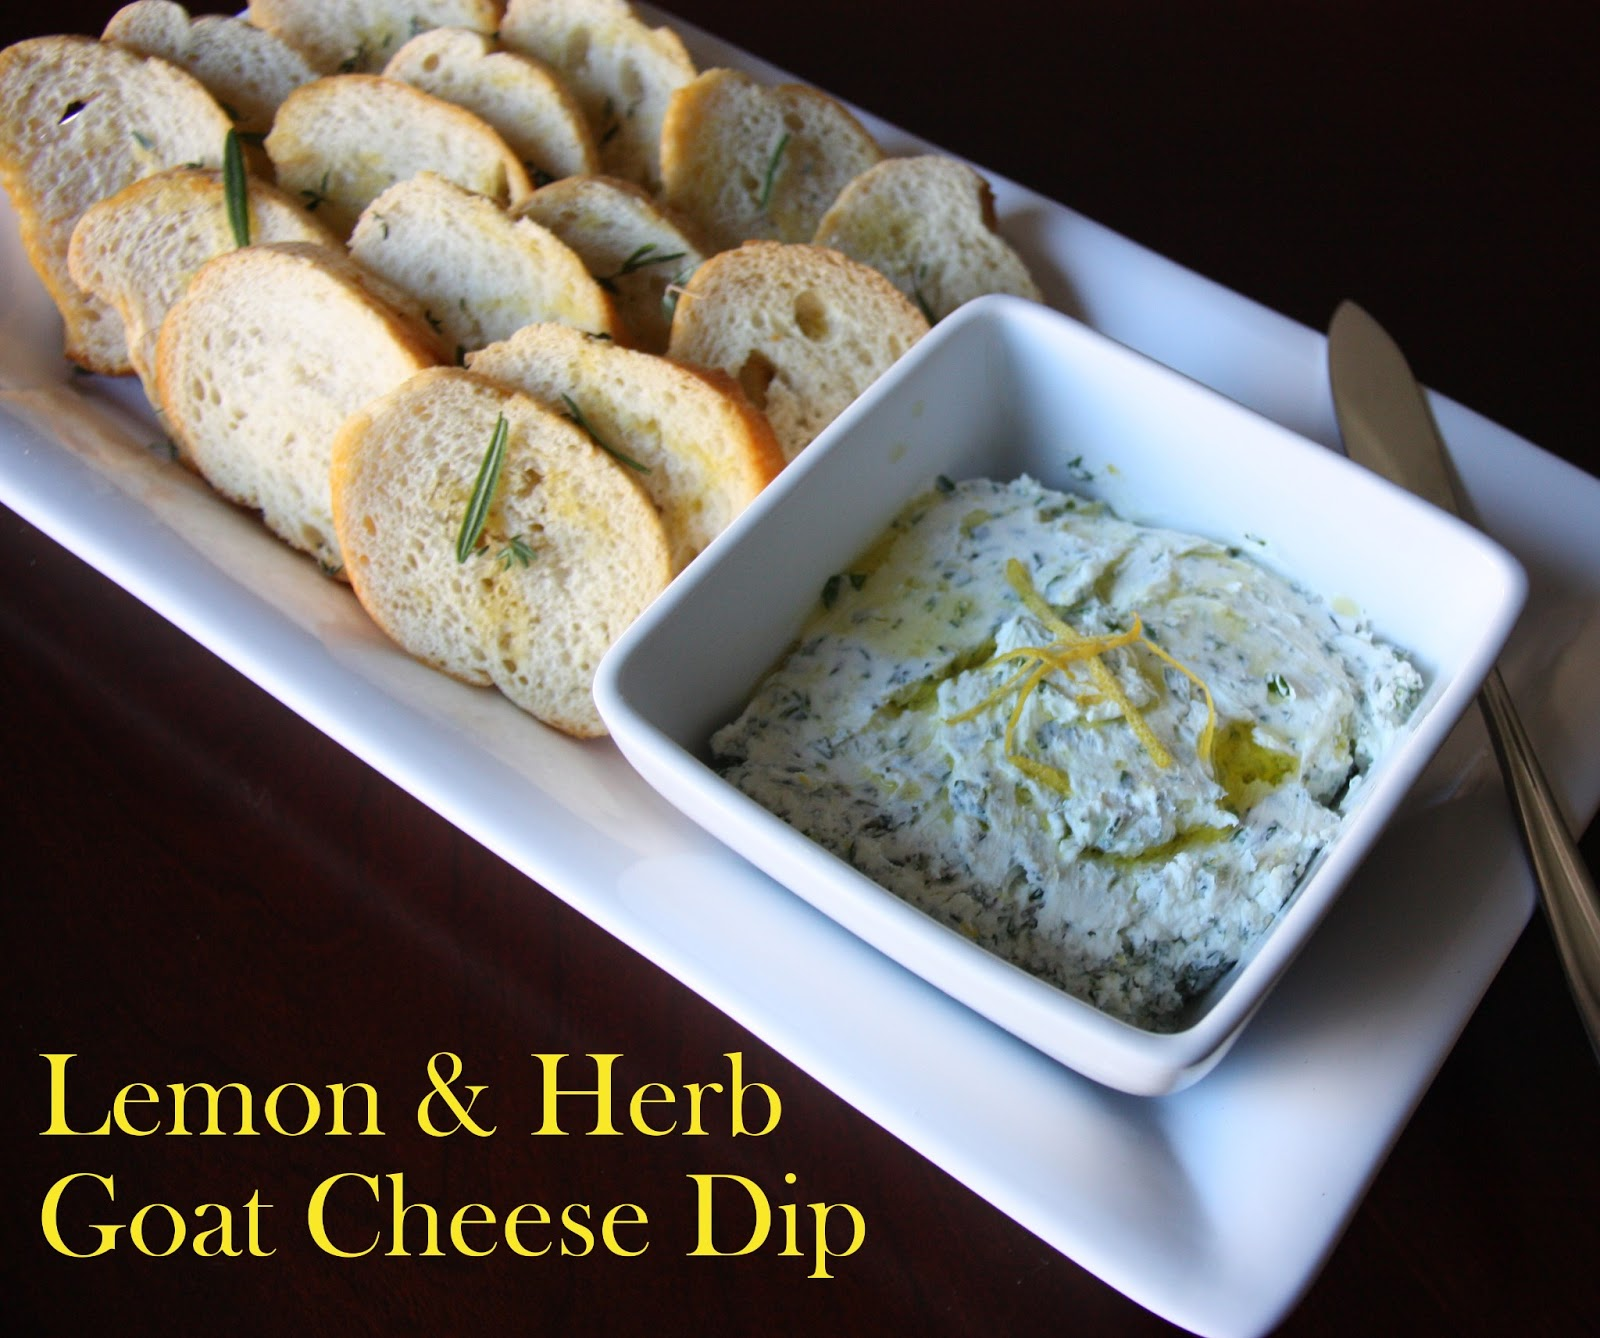 Lemon & Herb Goat Cheese Dip - The Lovebugs Blog